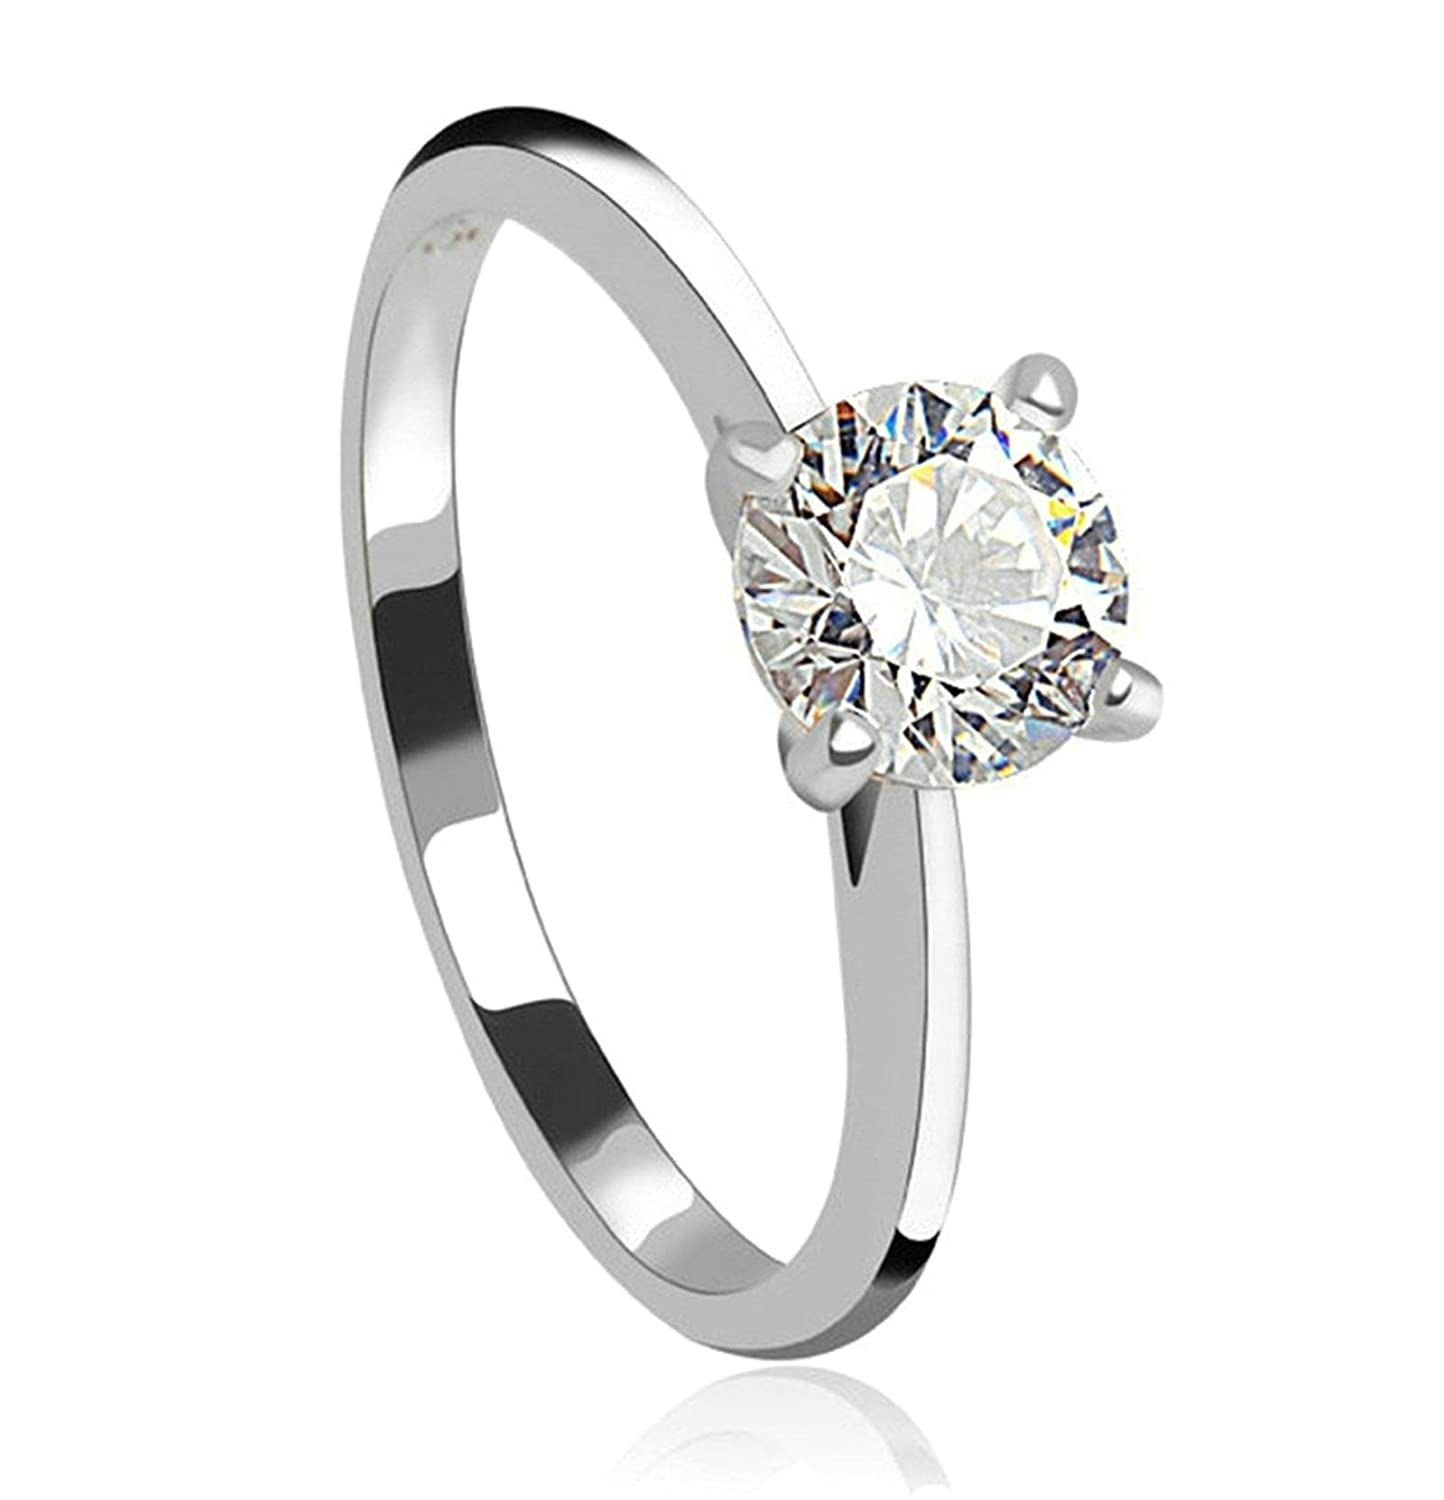 Womens Ladies Silver Plated Wedding Bands Retro Promise Ring Round White Crystal CZ Size 8 Aooaz Jewelry ML169